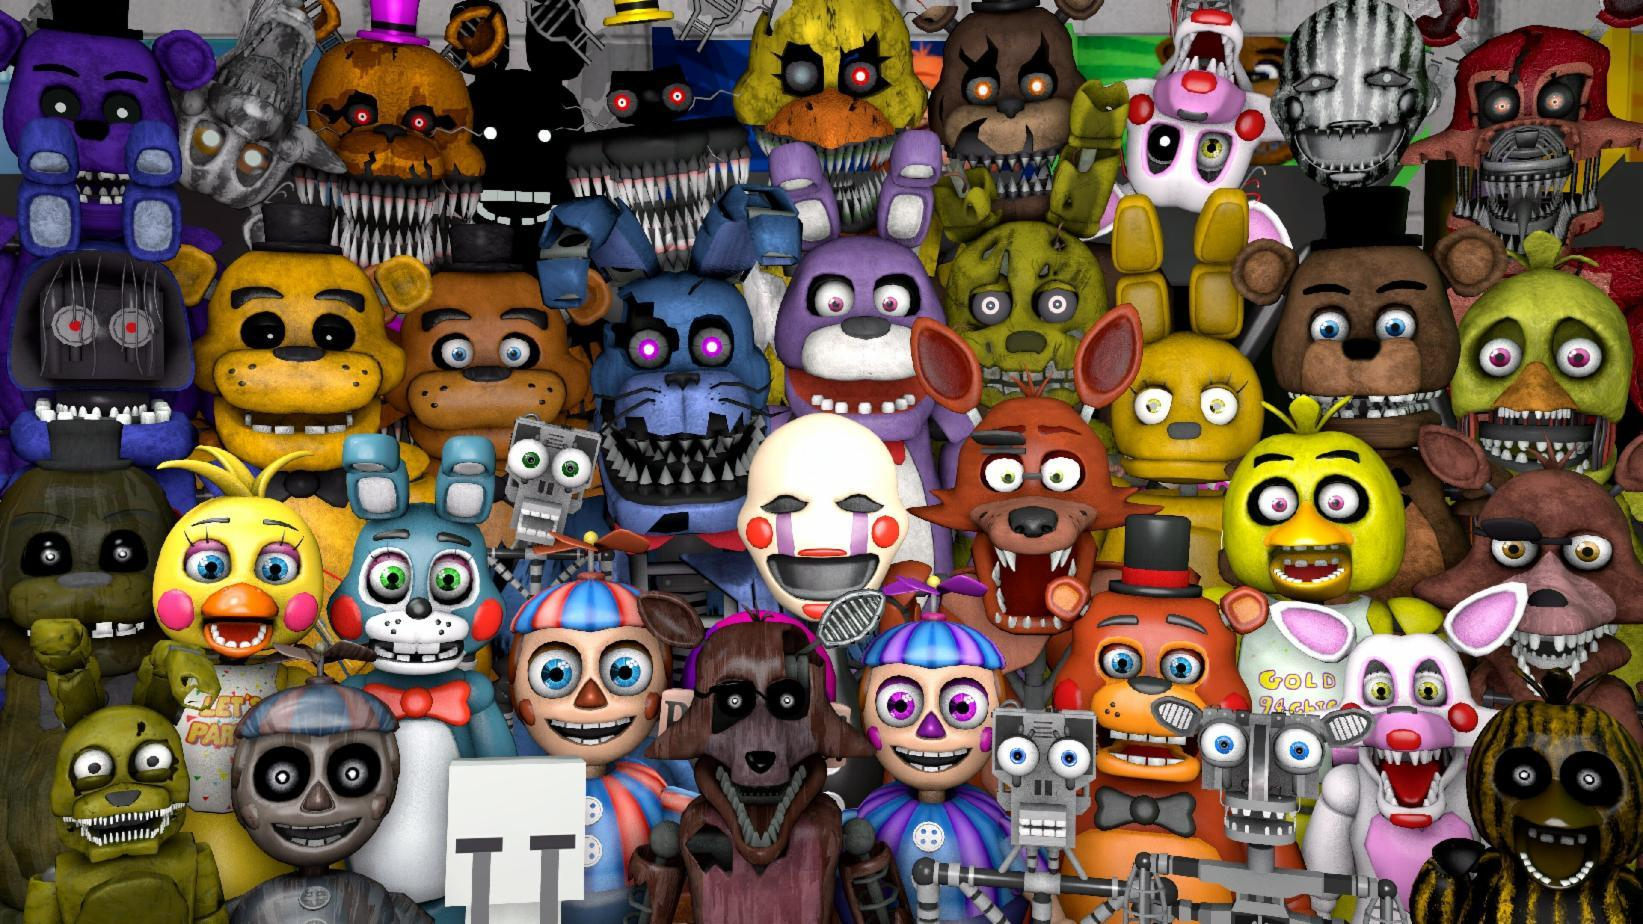 what fnaf character are you?